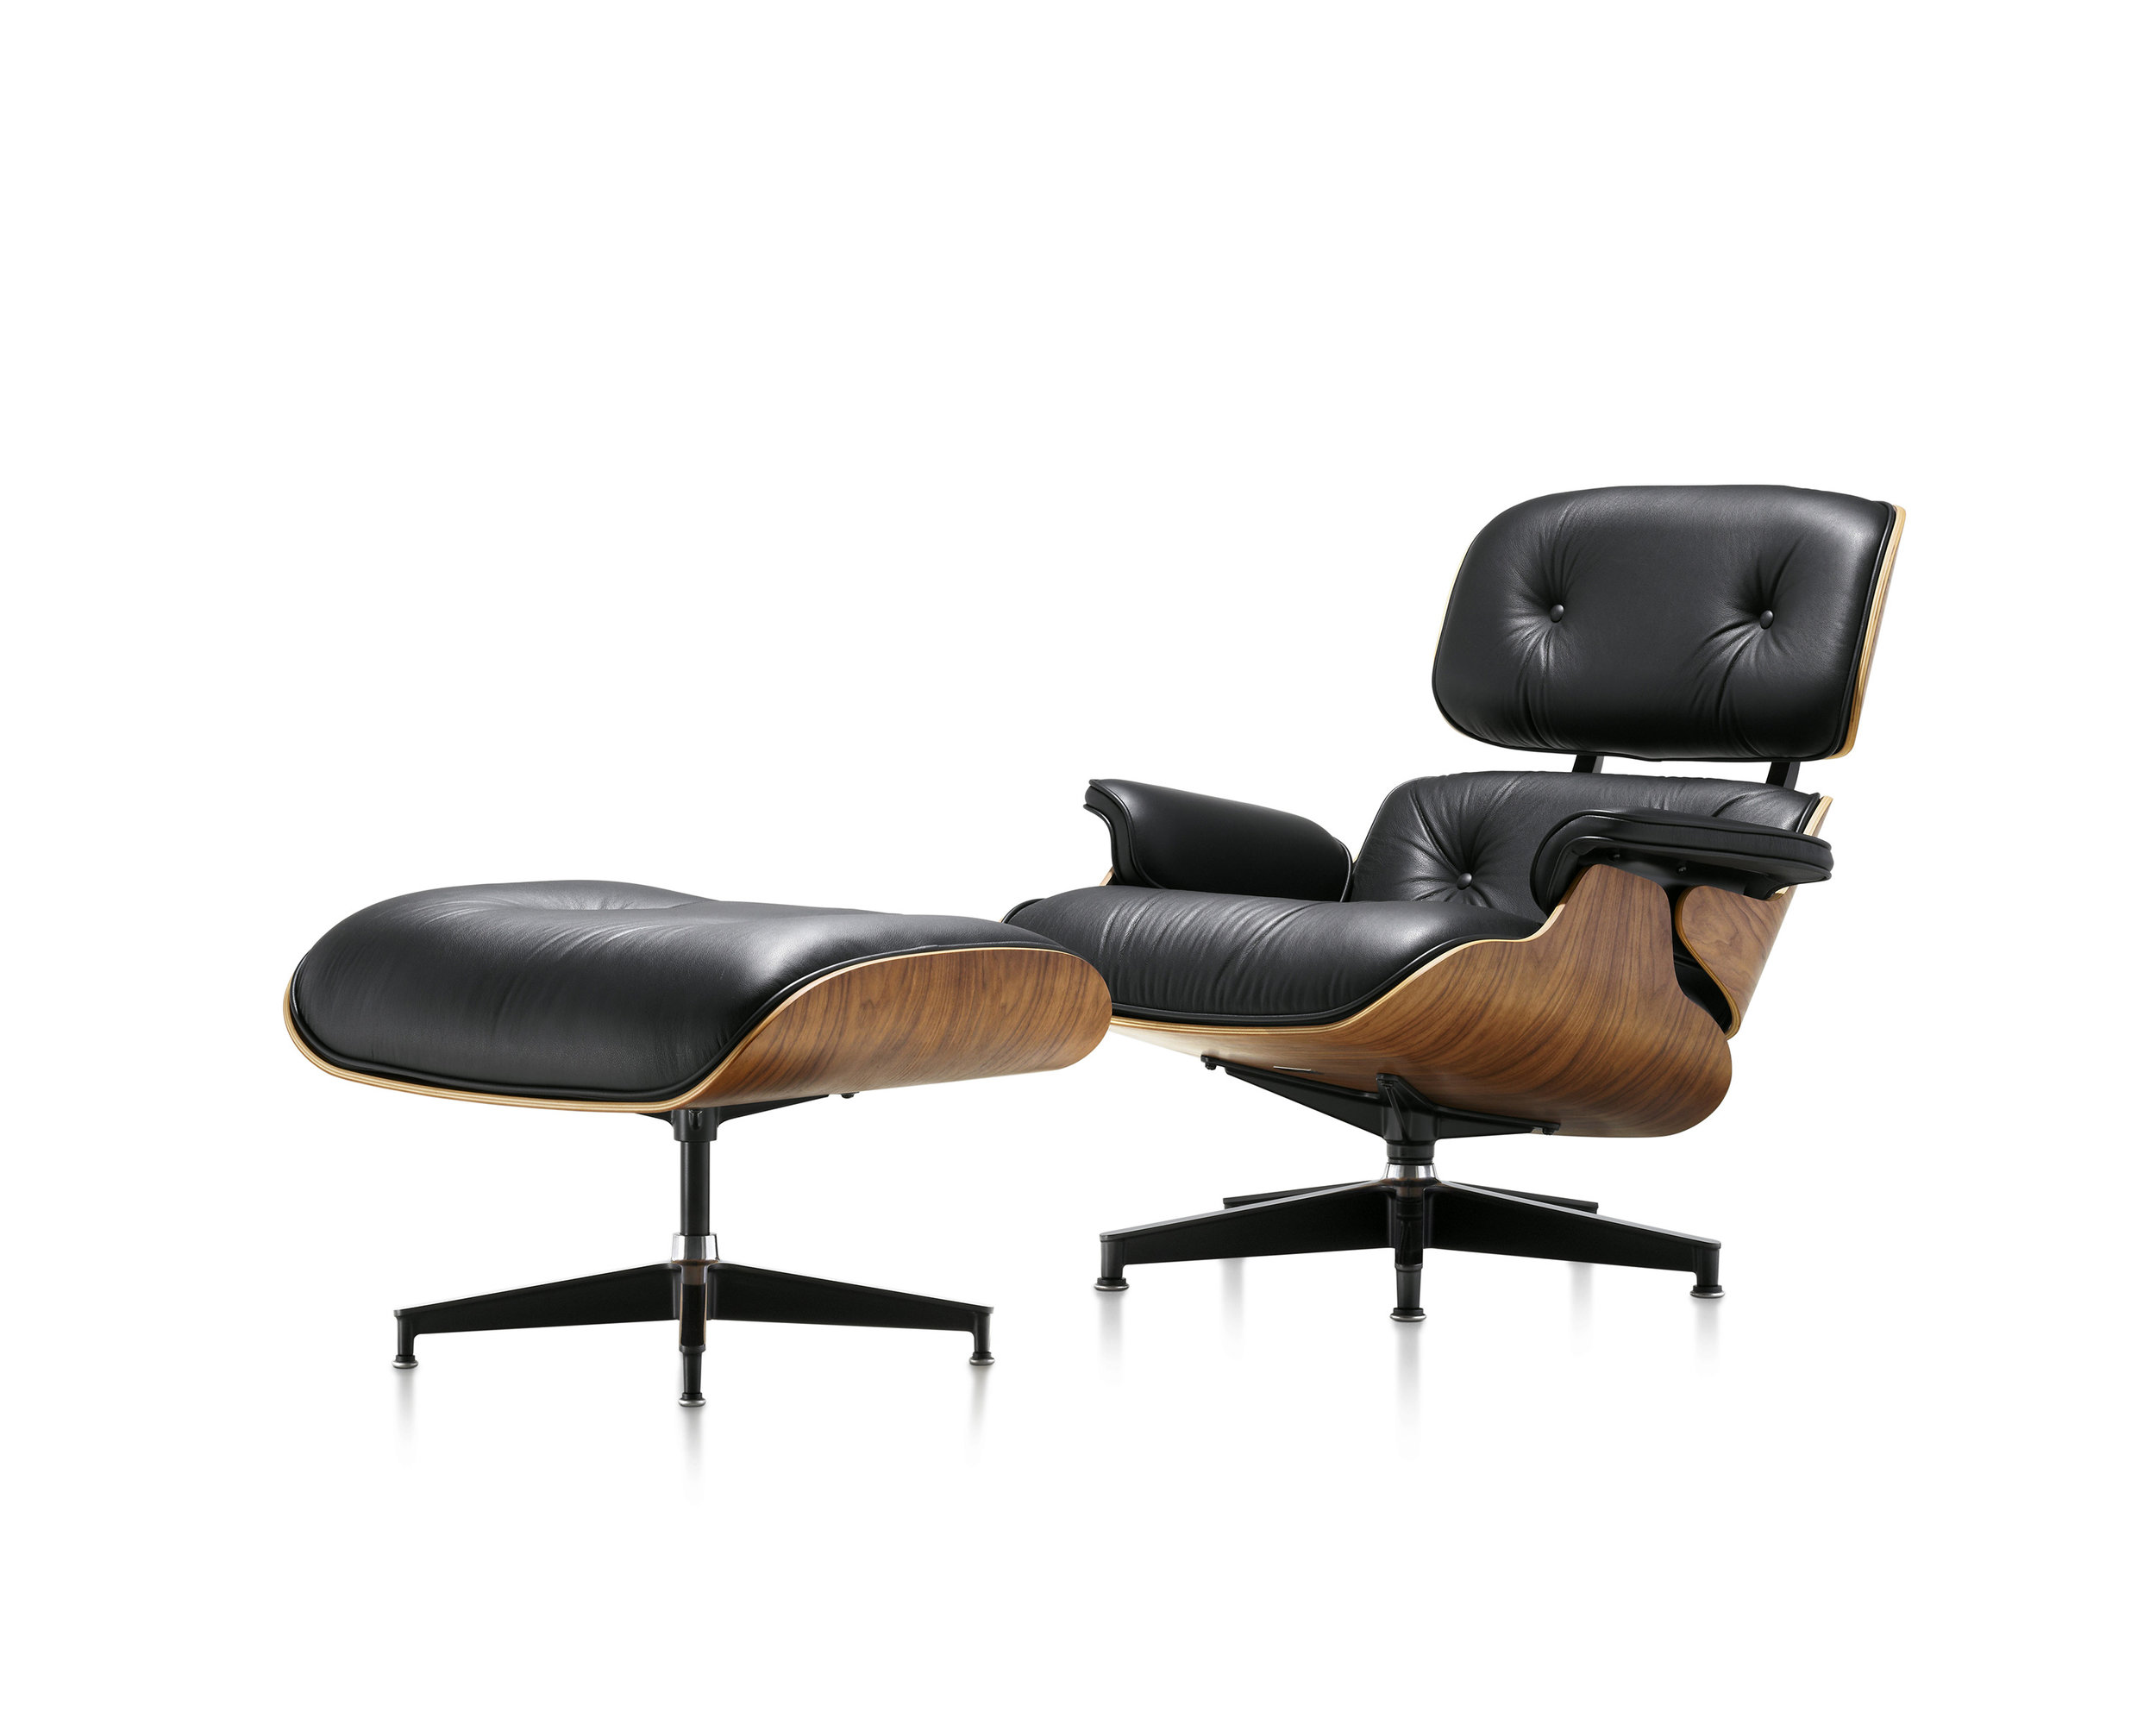 Eames Lounge and Ottoman Walnut- Black Leather.jpg